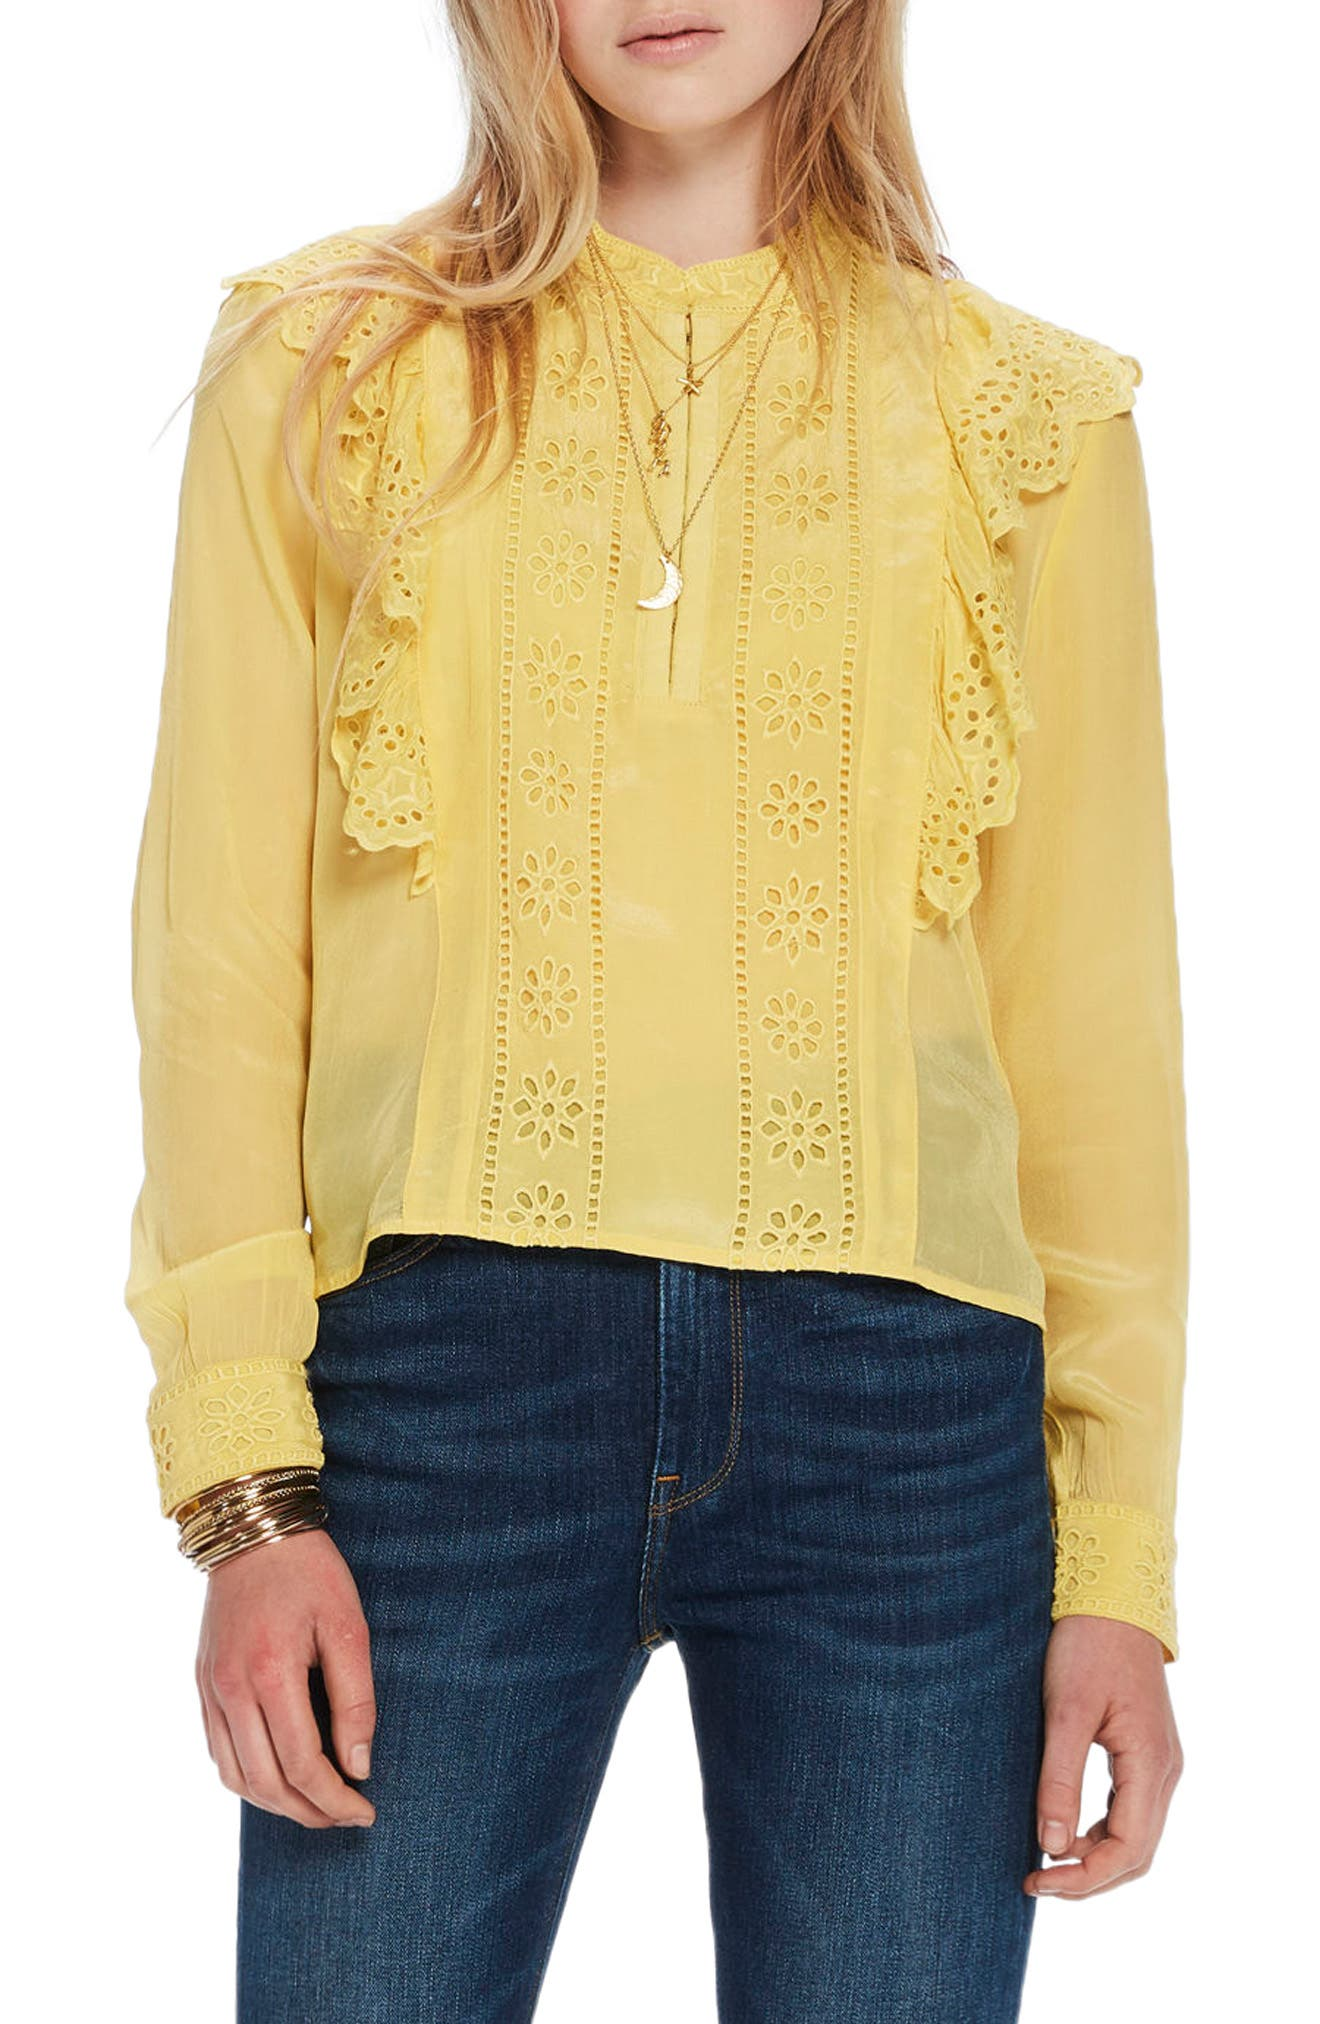 Ruffle Embroidered Eyelet Top,                         Main,                         color, 2118 Cheddar